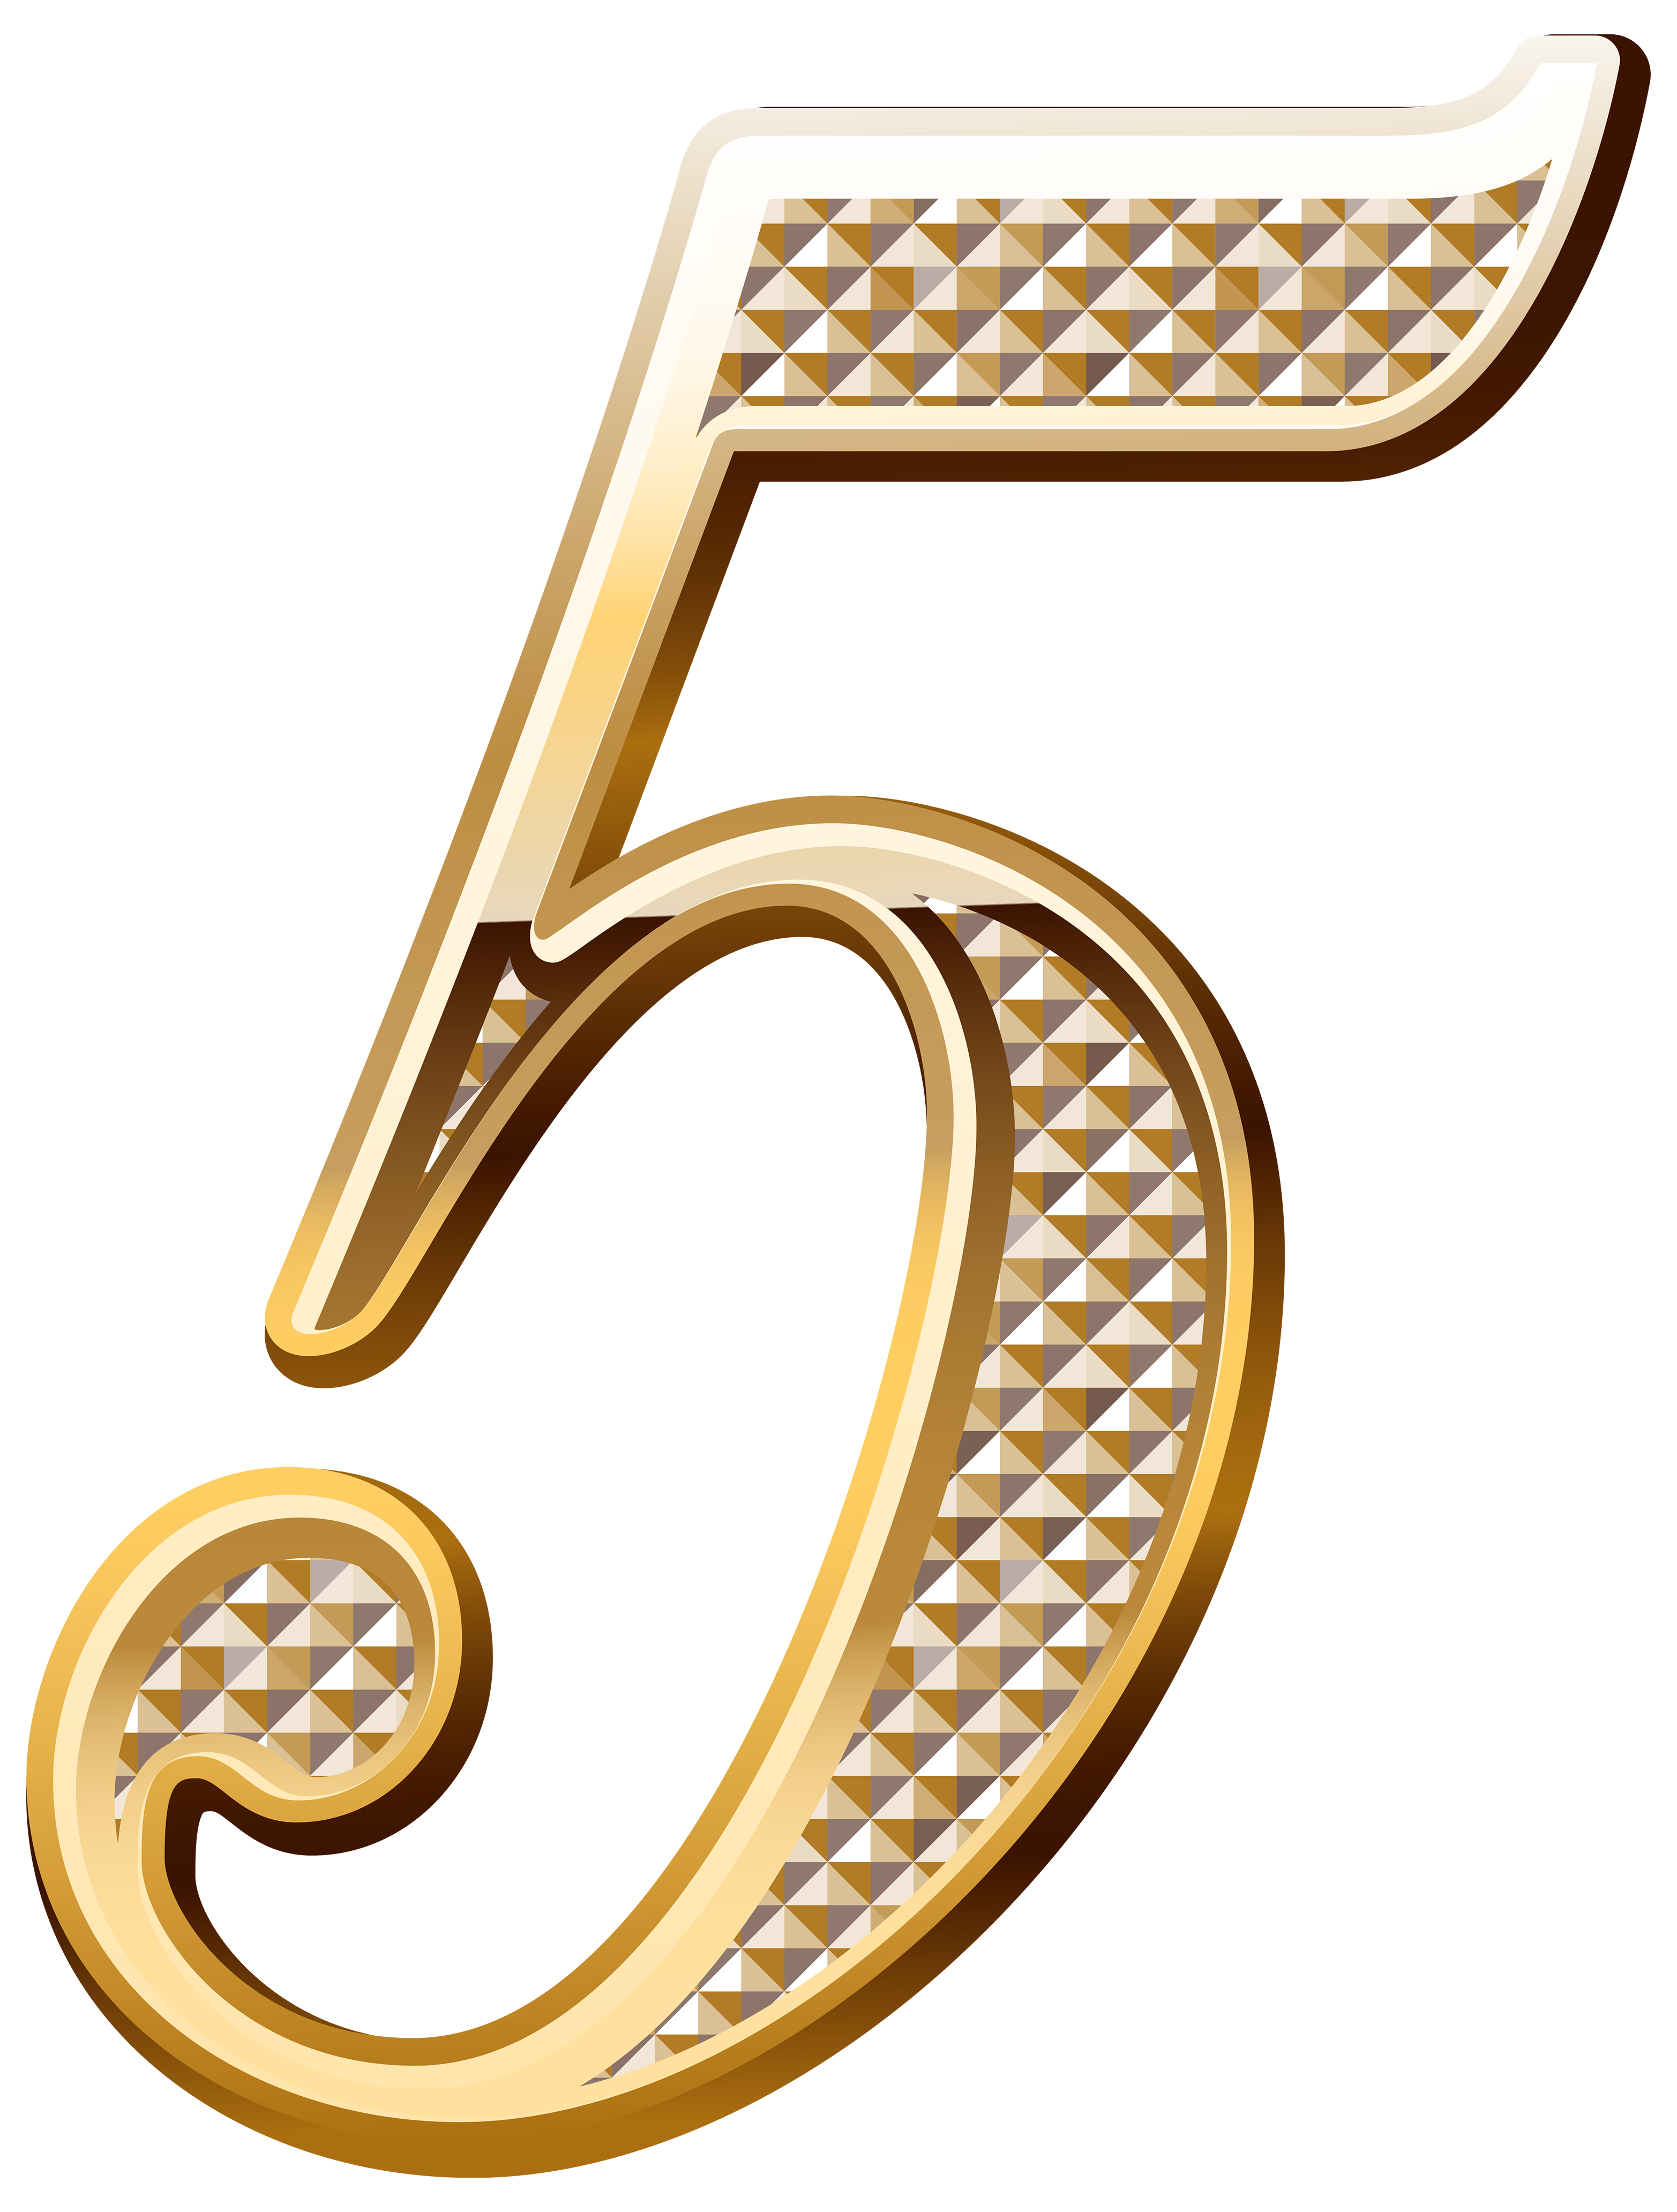 Gold 5 png. Number clip art transprent